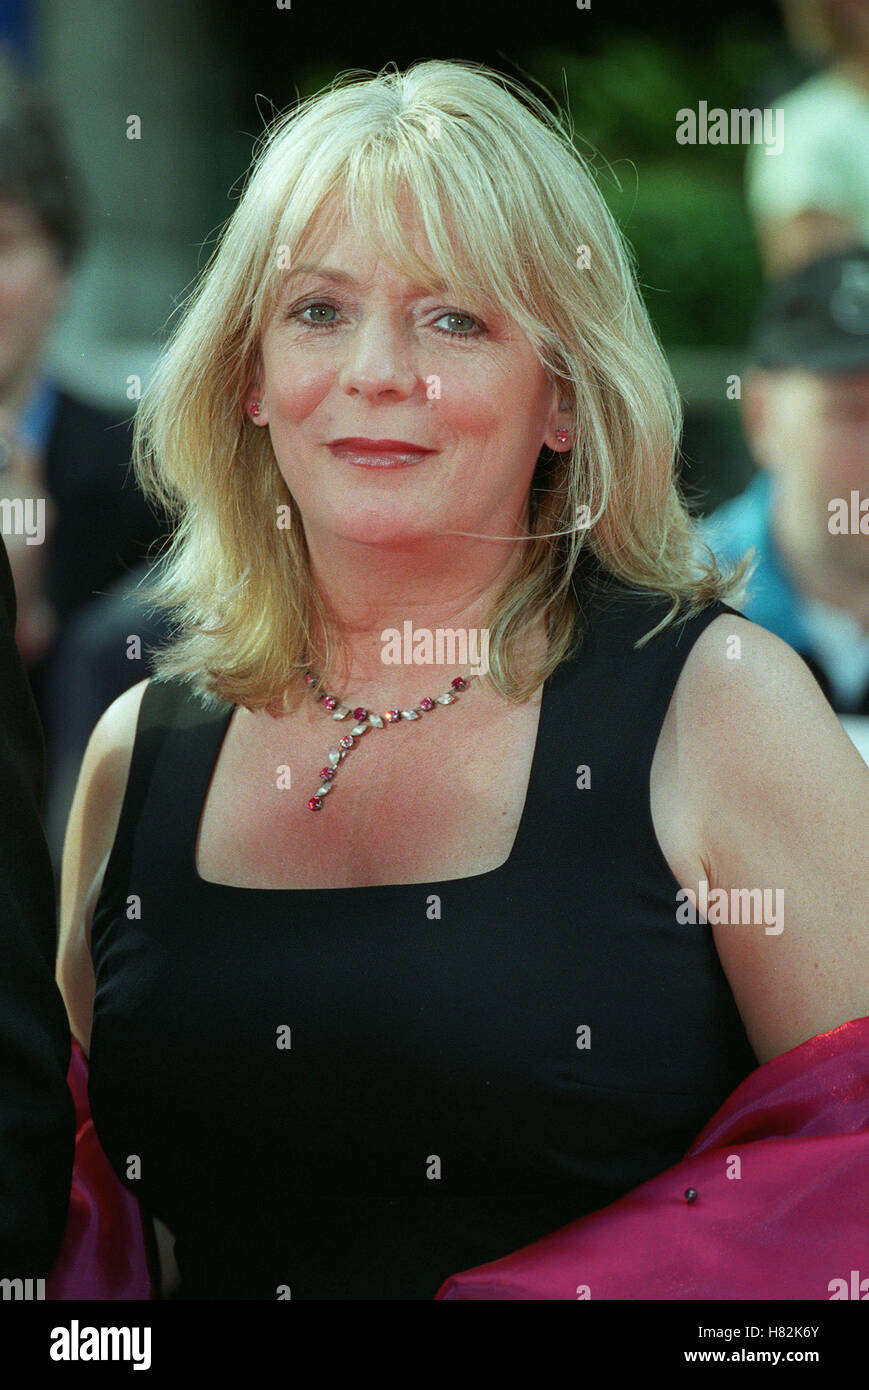 Alison Steadman Movies And Tv Shows actress alison steadman stock photos & actress alison